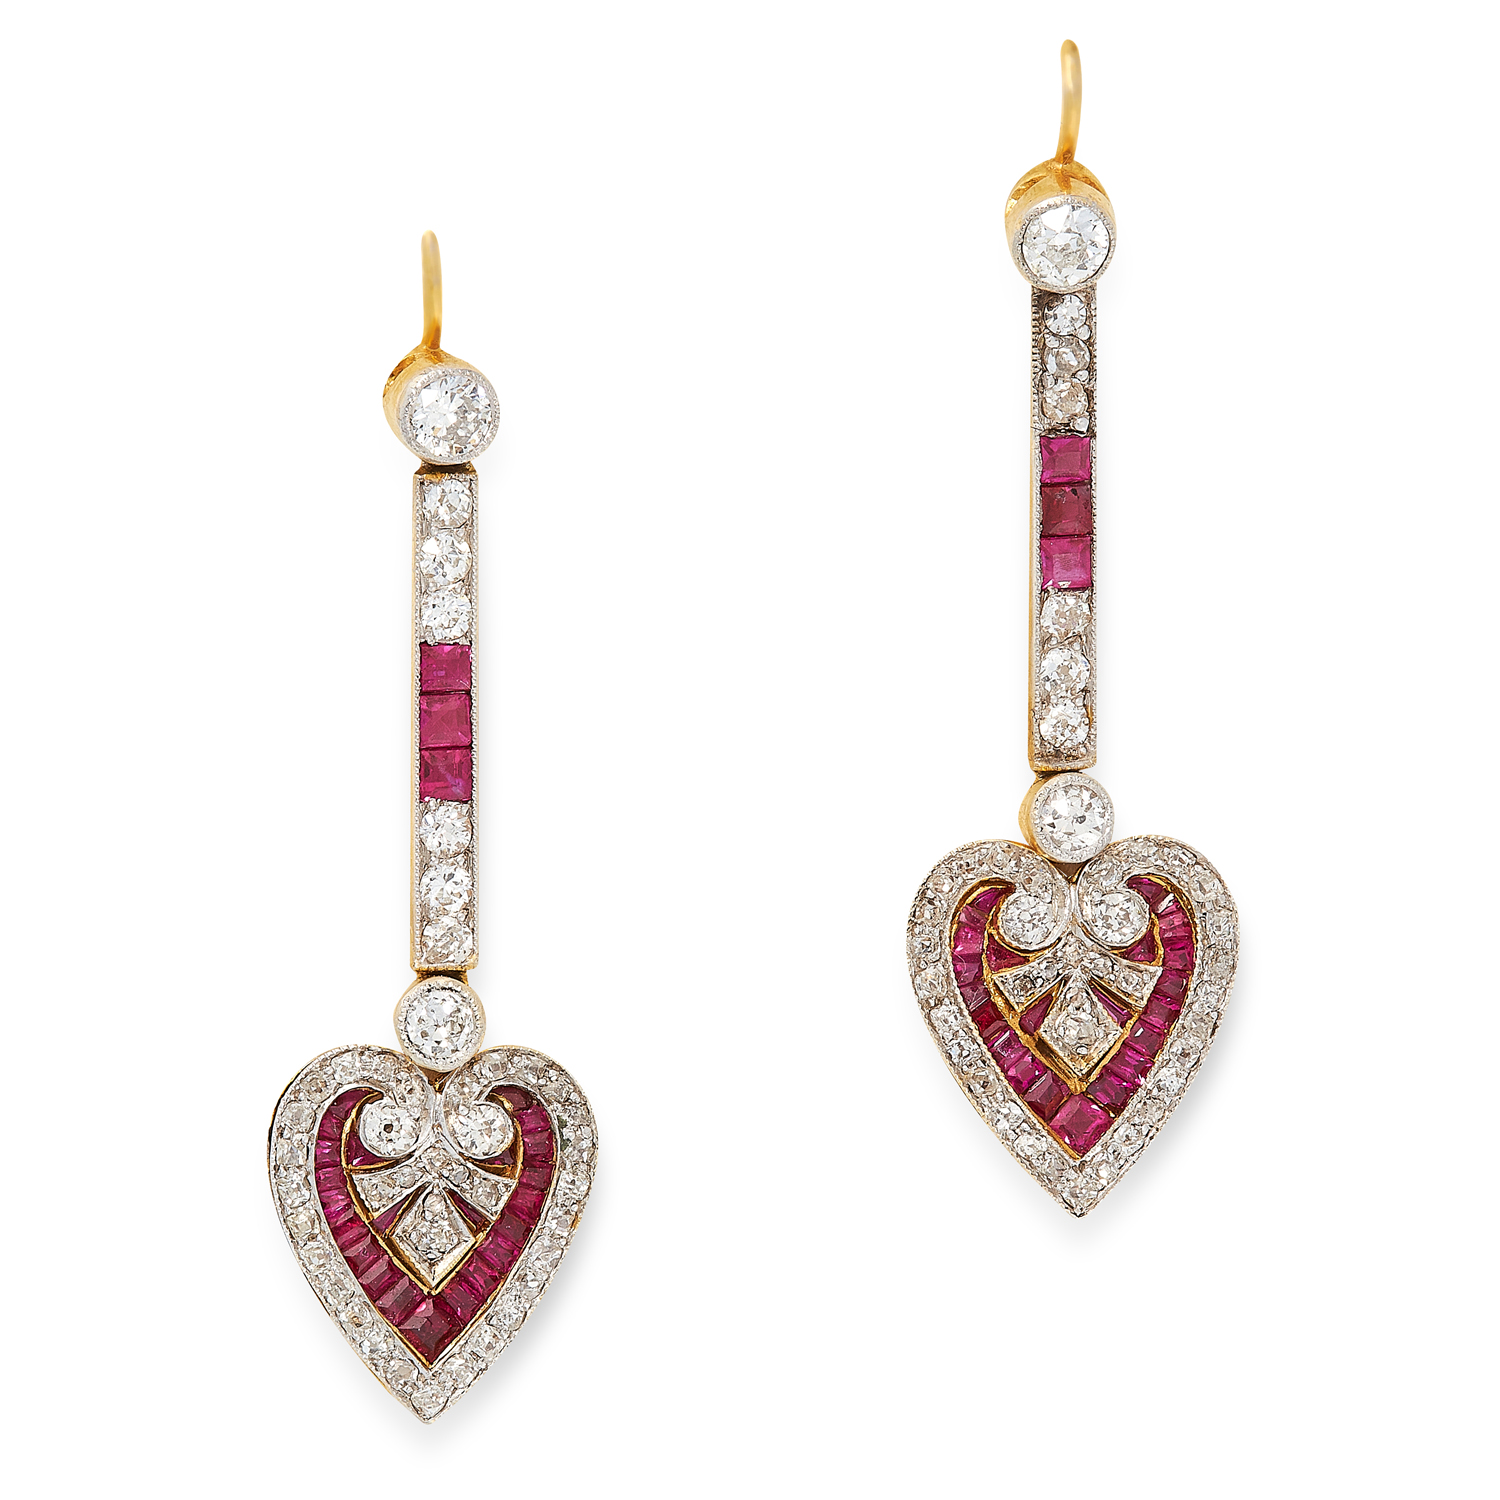 A PAIR OF RUBY AND DIAMOND DROP EARRINGS CIRCA 1940 in high carat yellow gold, designed as heart